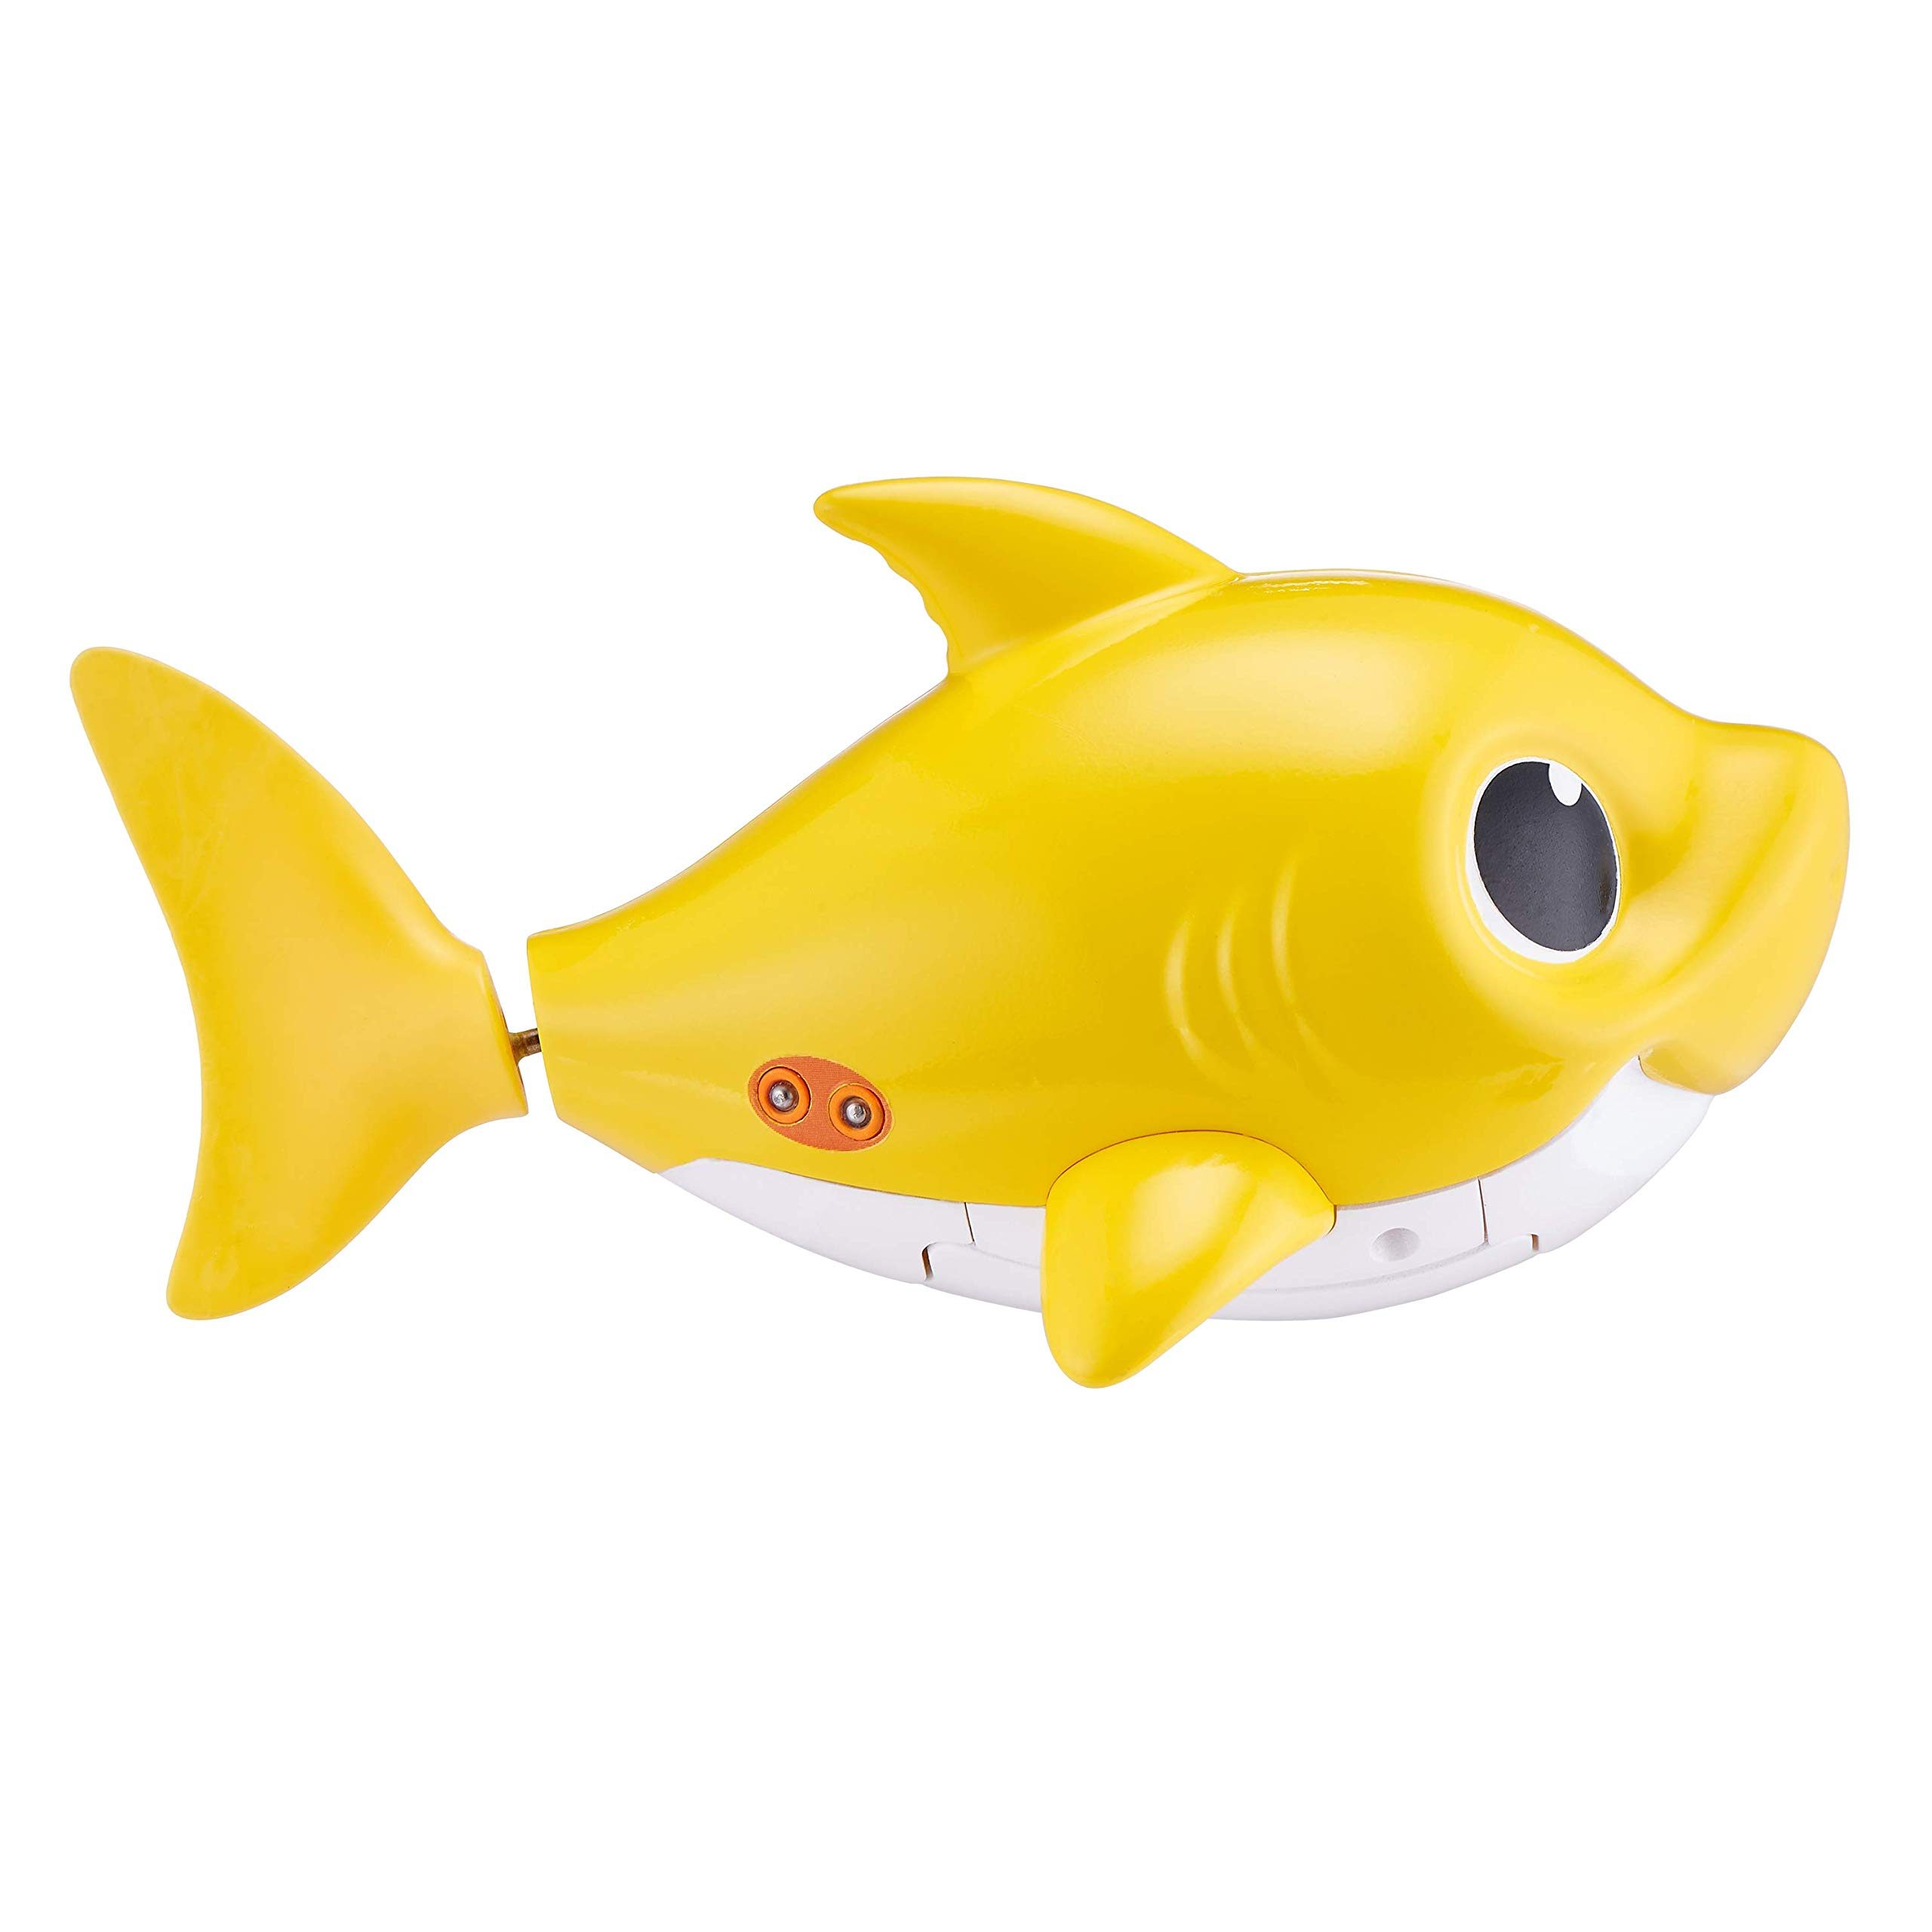 Robo Alive Junior Baby Shark Battery-Powered Sing and Swim Bath Toy by ZURU - Baby Shark (Yellow) by Robo Alive Junior (Image #4)